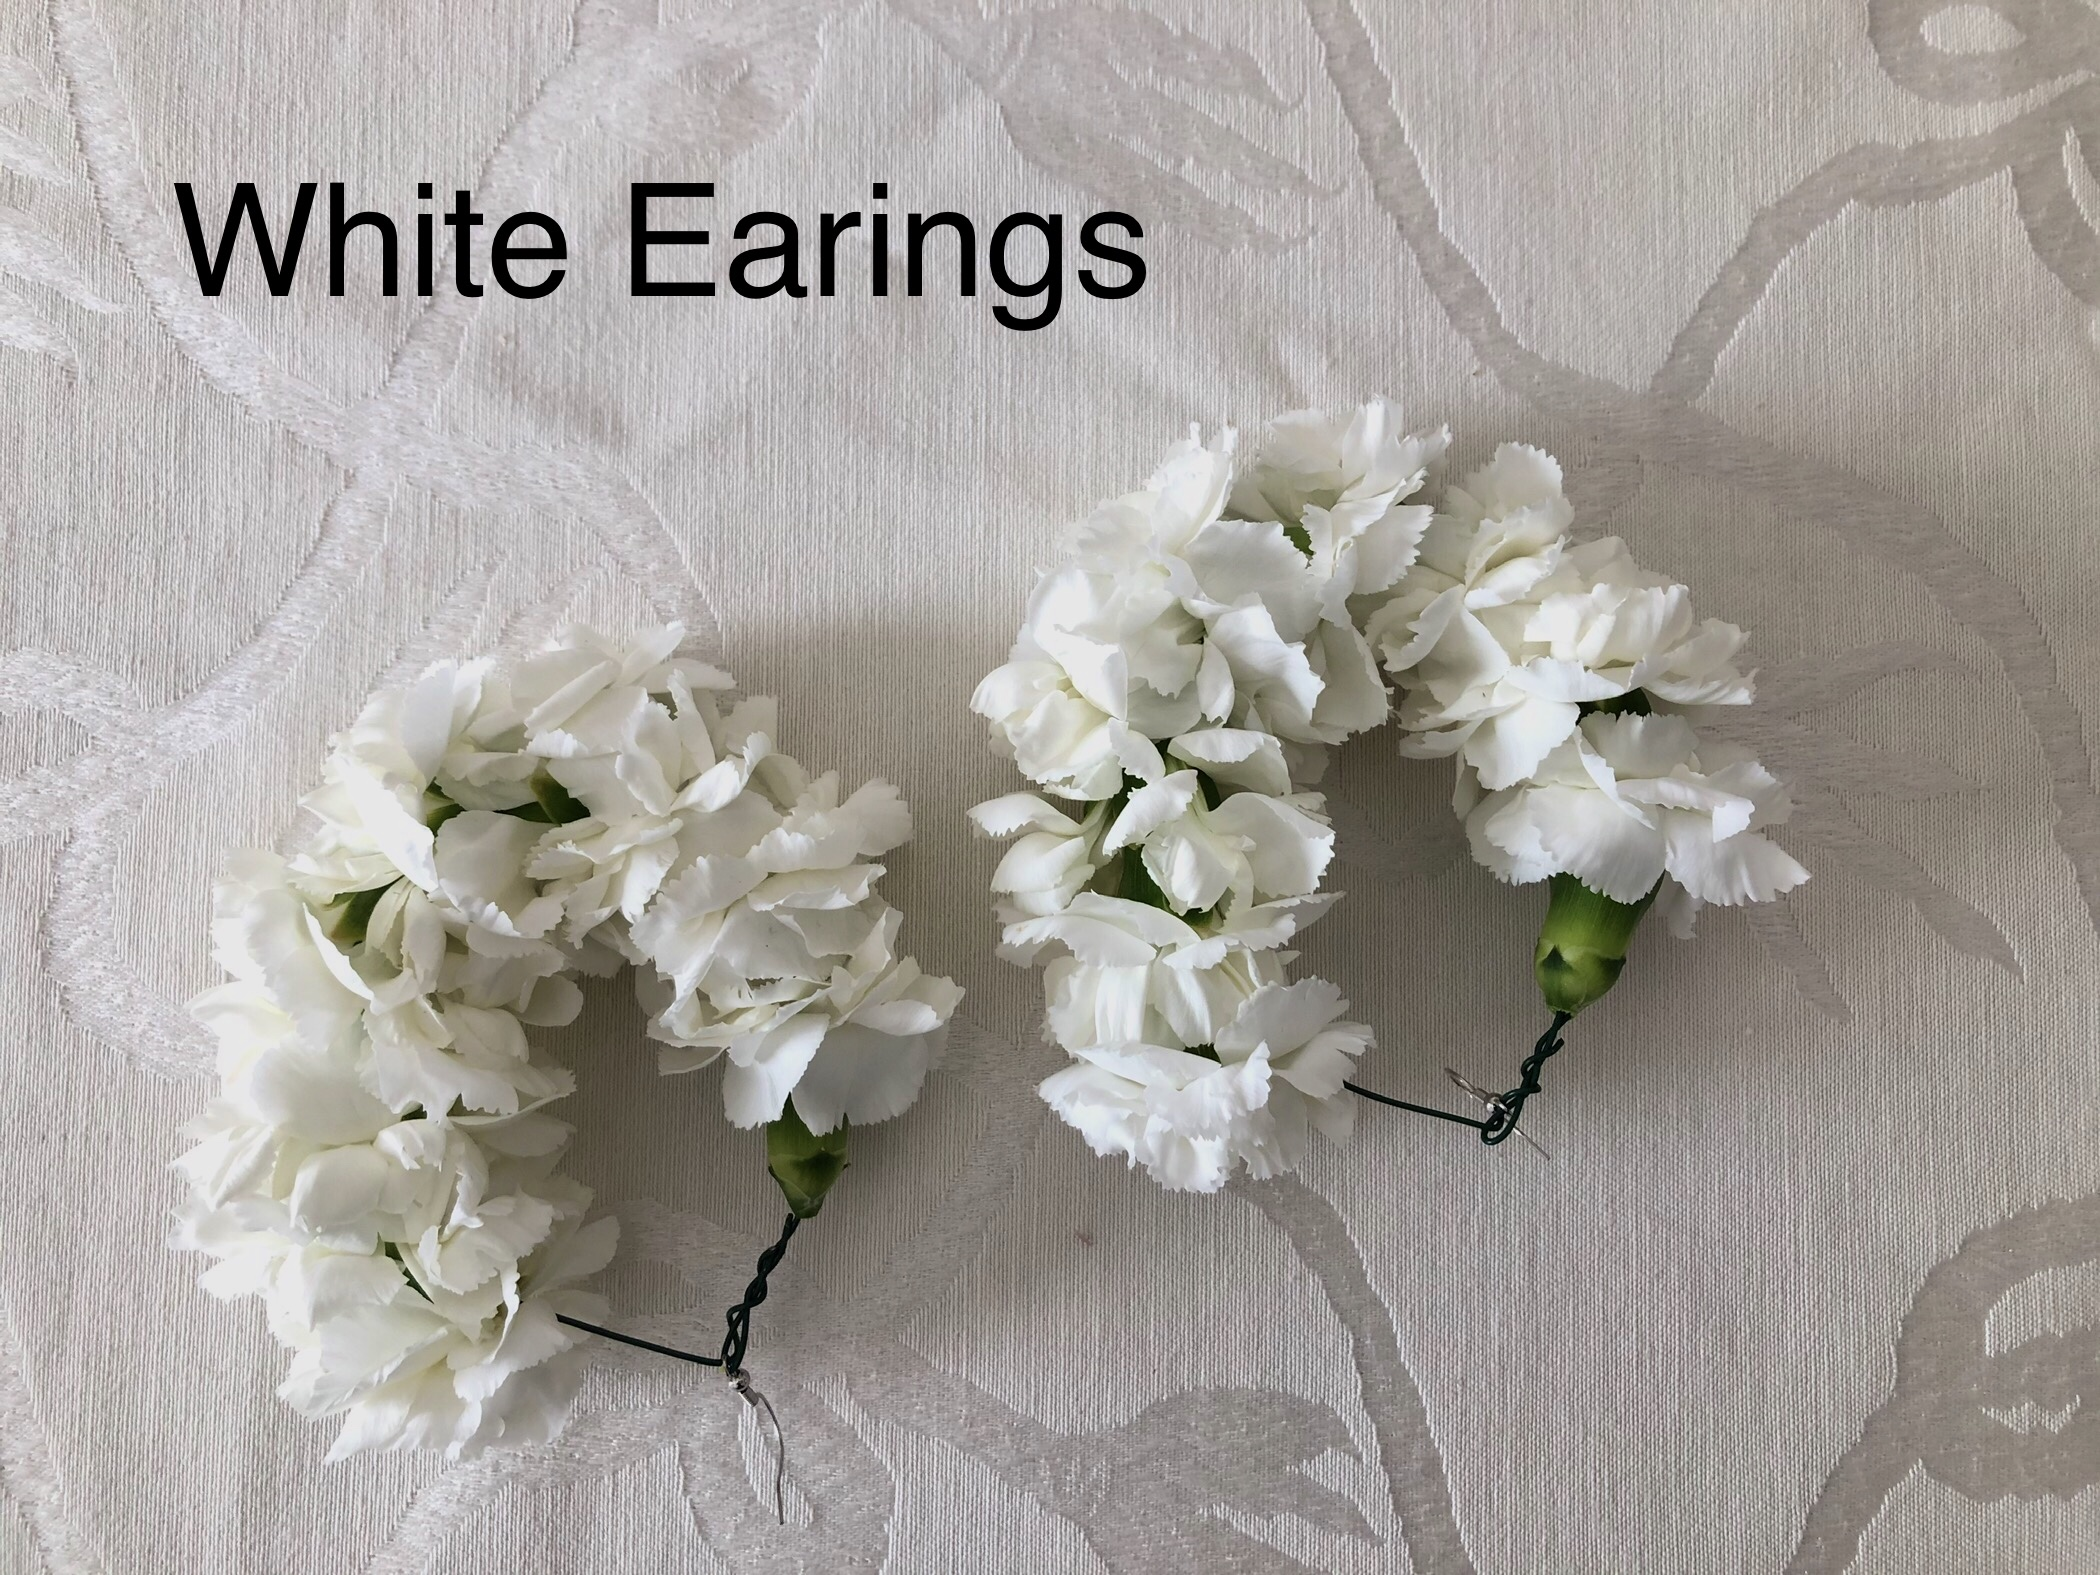 White Earings